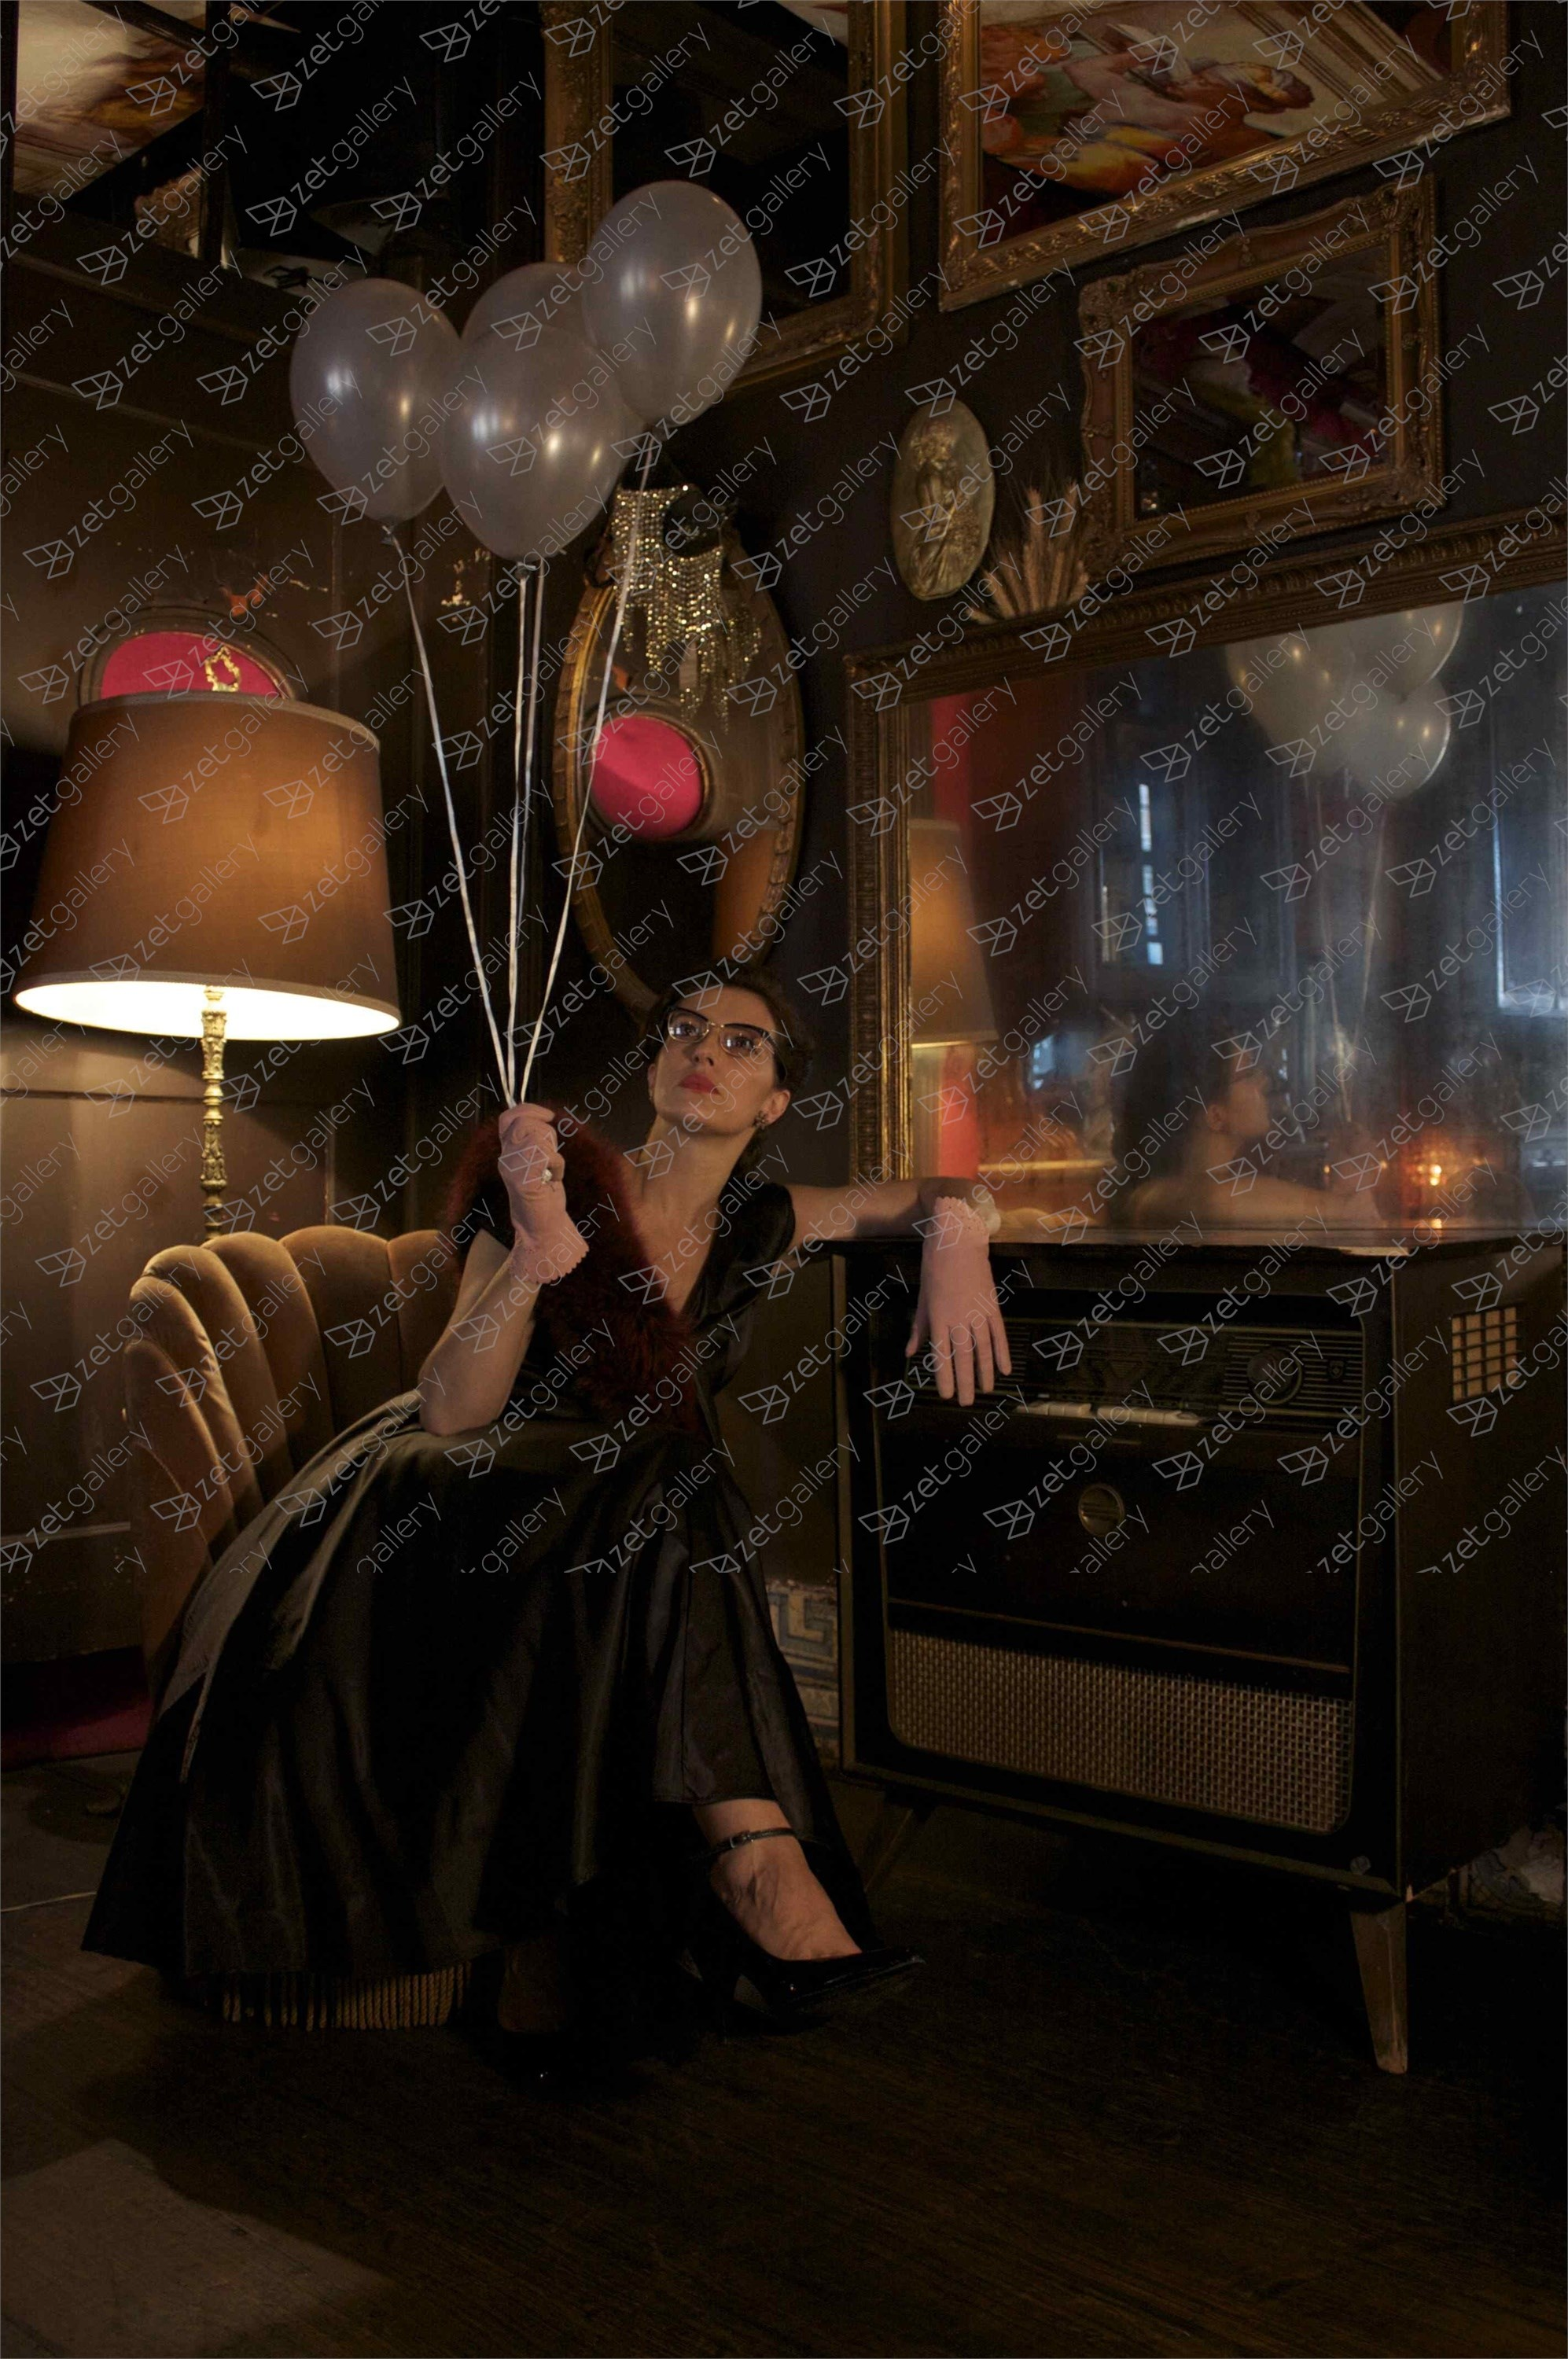 Fly me to the moon, Fotografía Digital Figura Humana original por Claudia Clemente